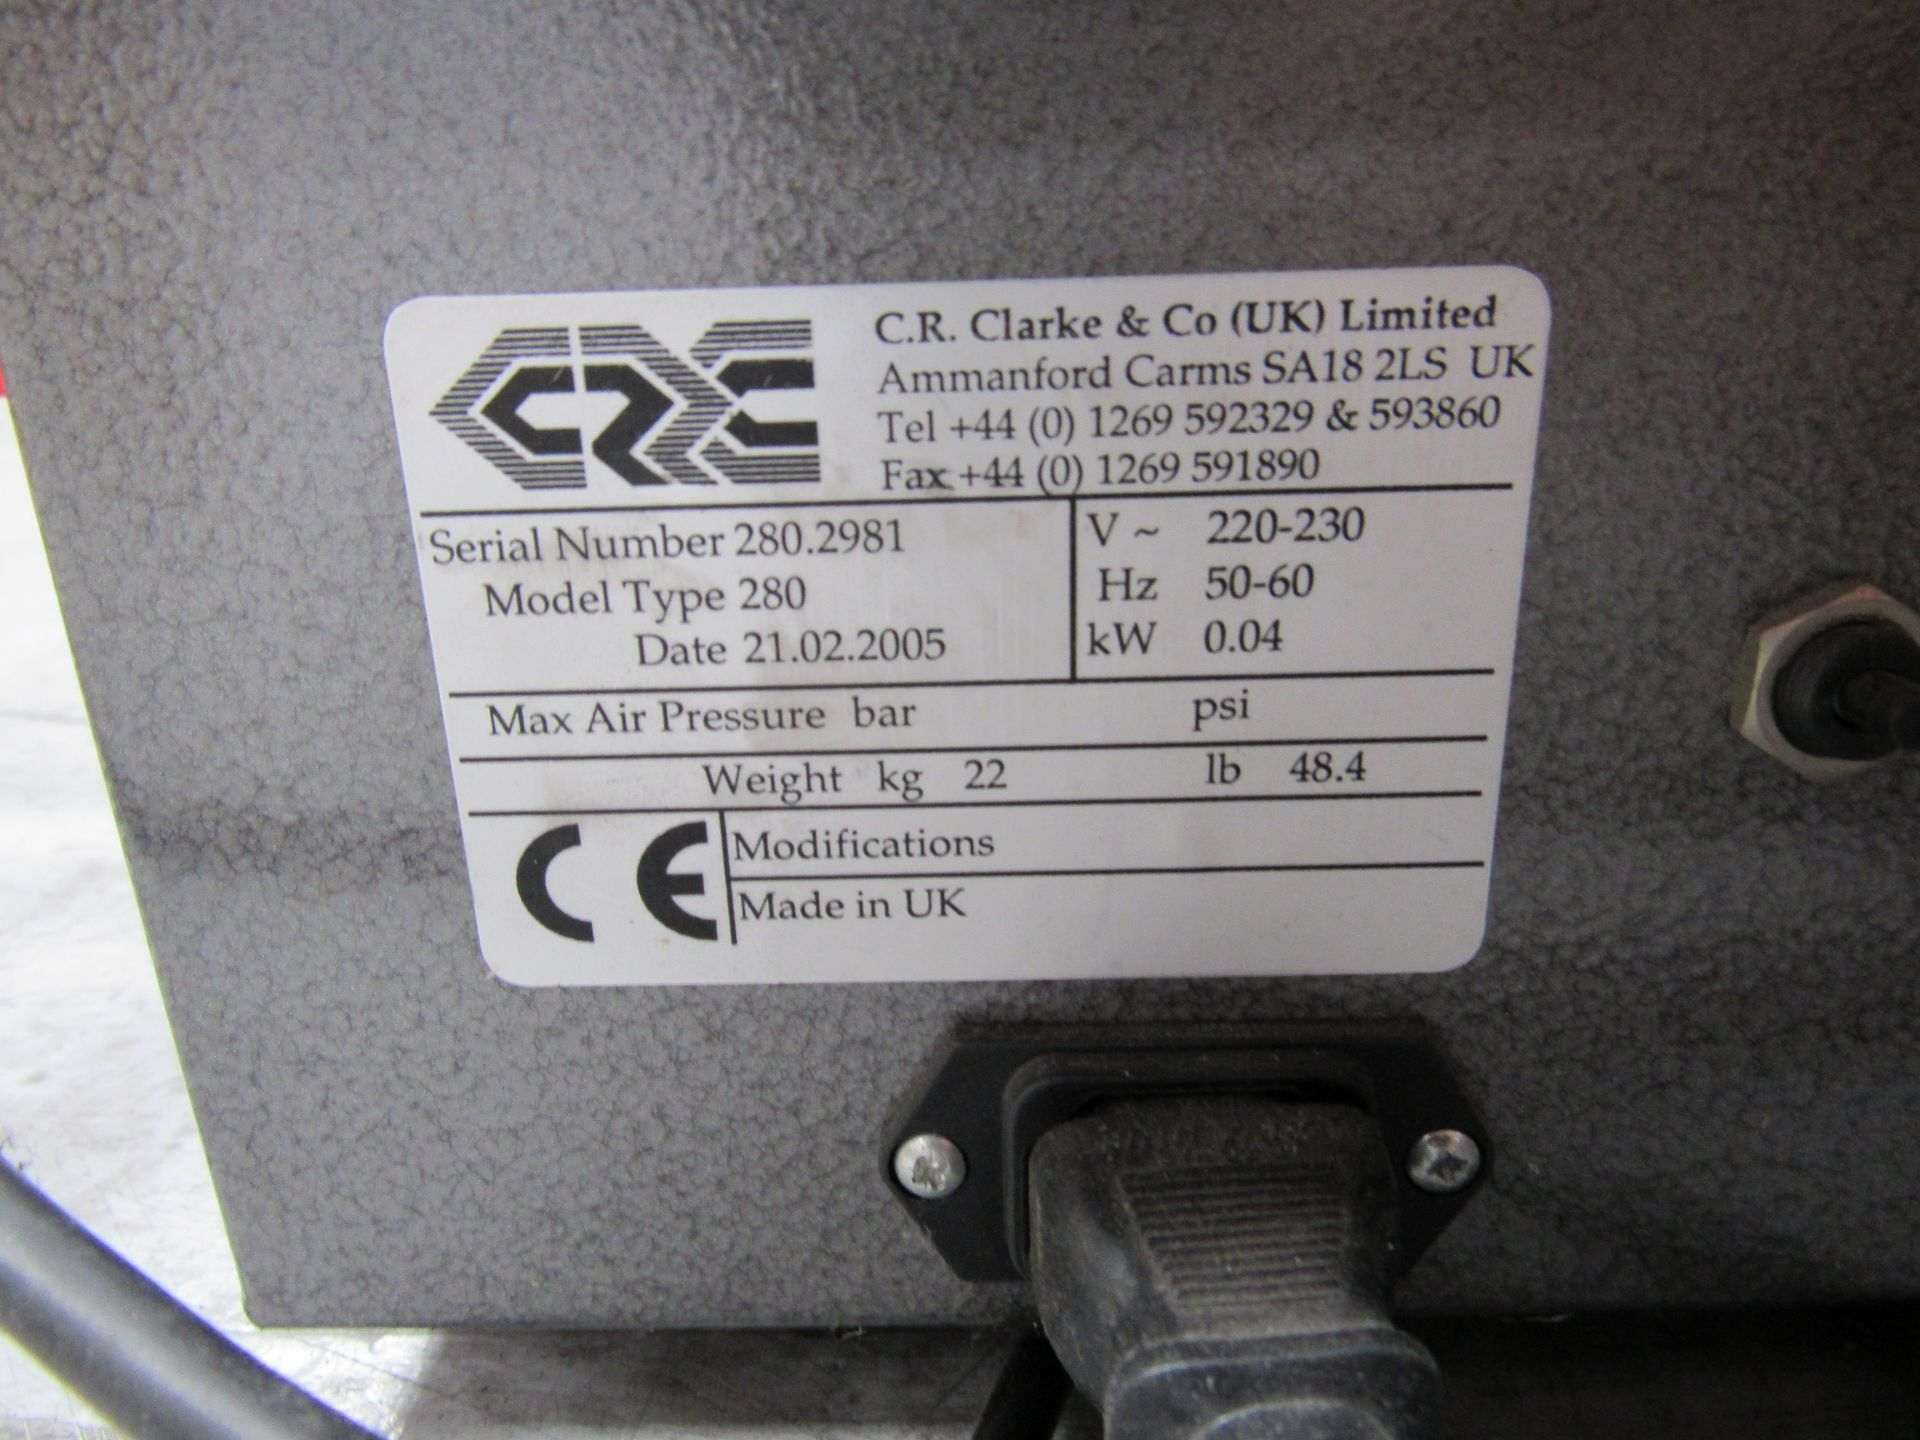 C R Clarke Hot Wire Sculptor 280 Serial Number 280-299, 2005 - Image 3 of 4